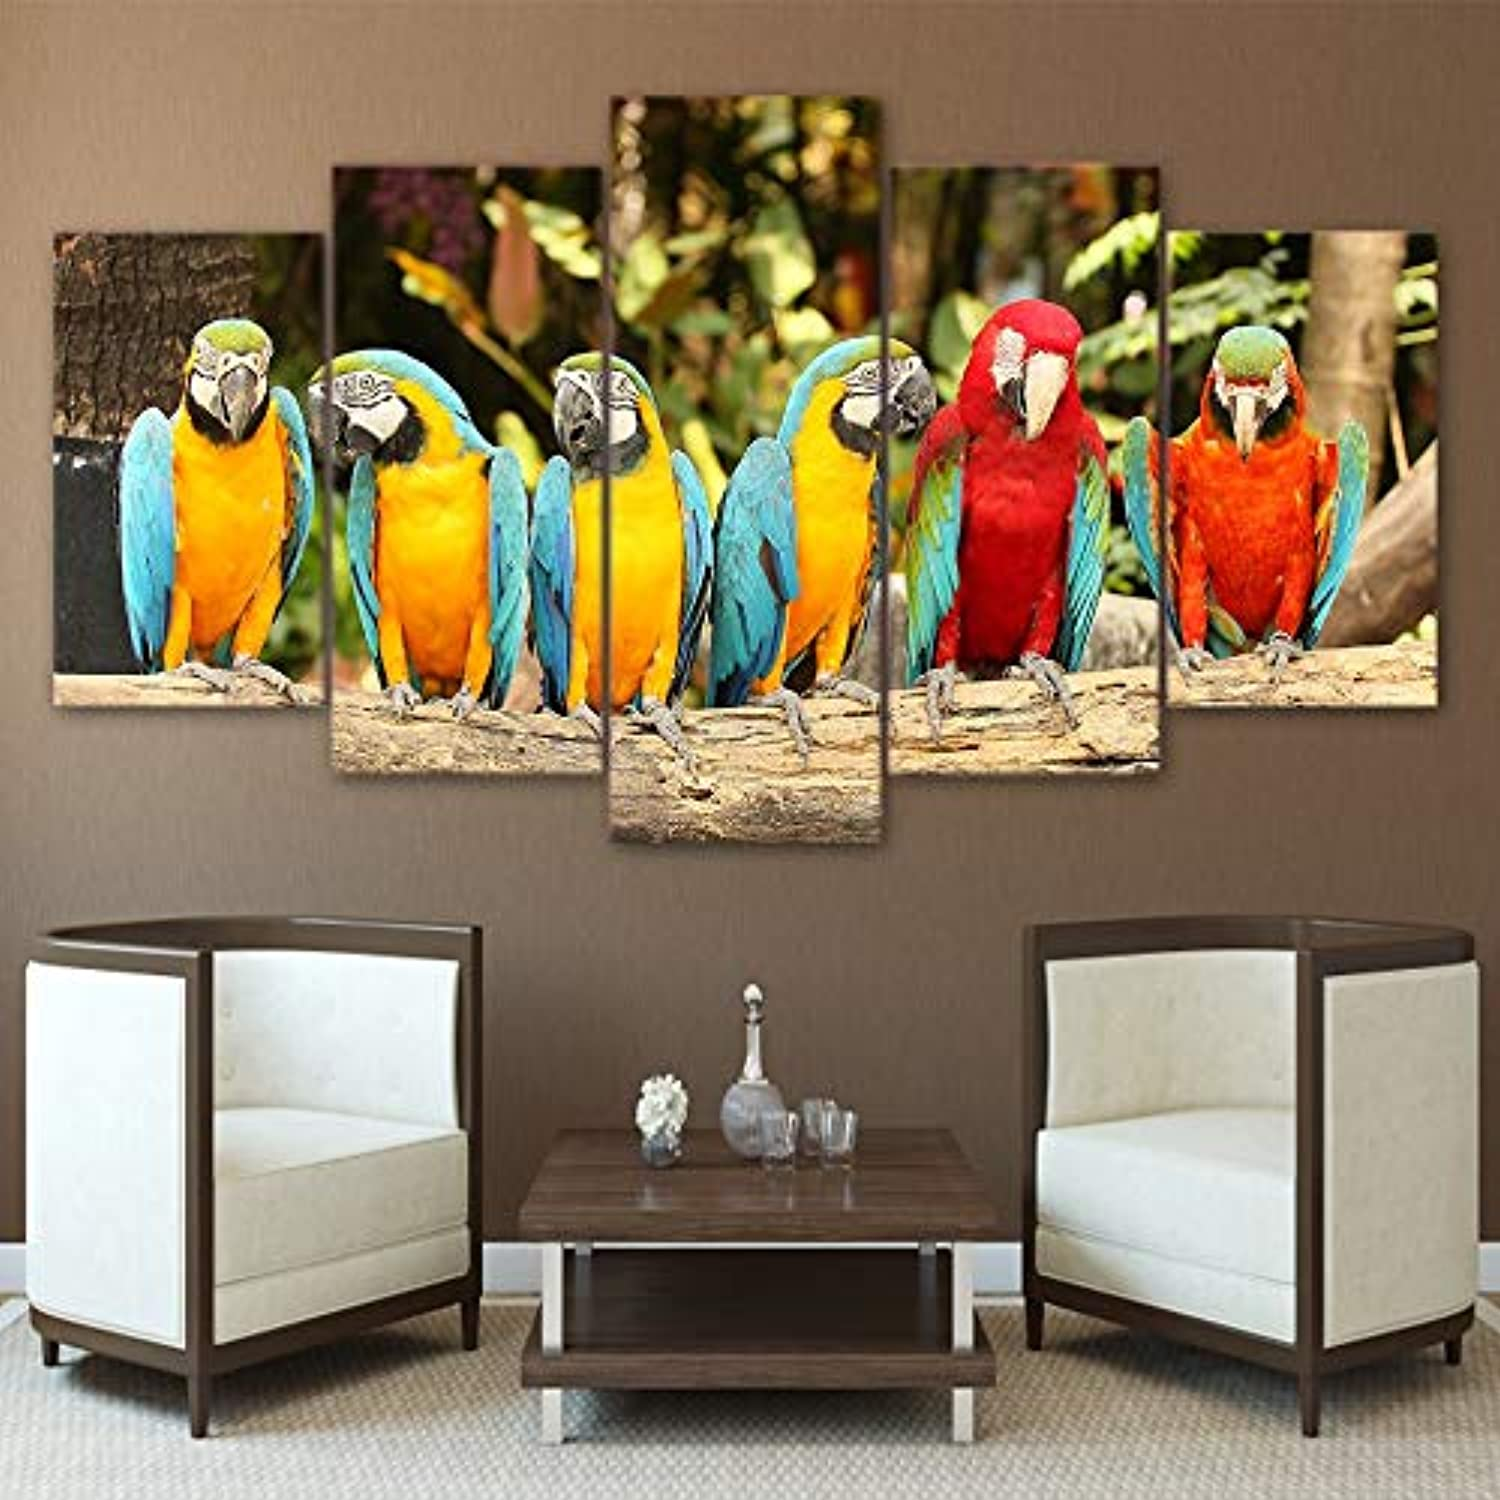 HD Printed Canvas Poster Frame Home Decor 5 Piece Pcs colorful Parreds Animal Art Painting Modular Living Room Wall Pictures